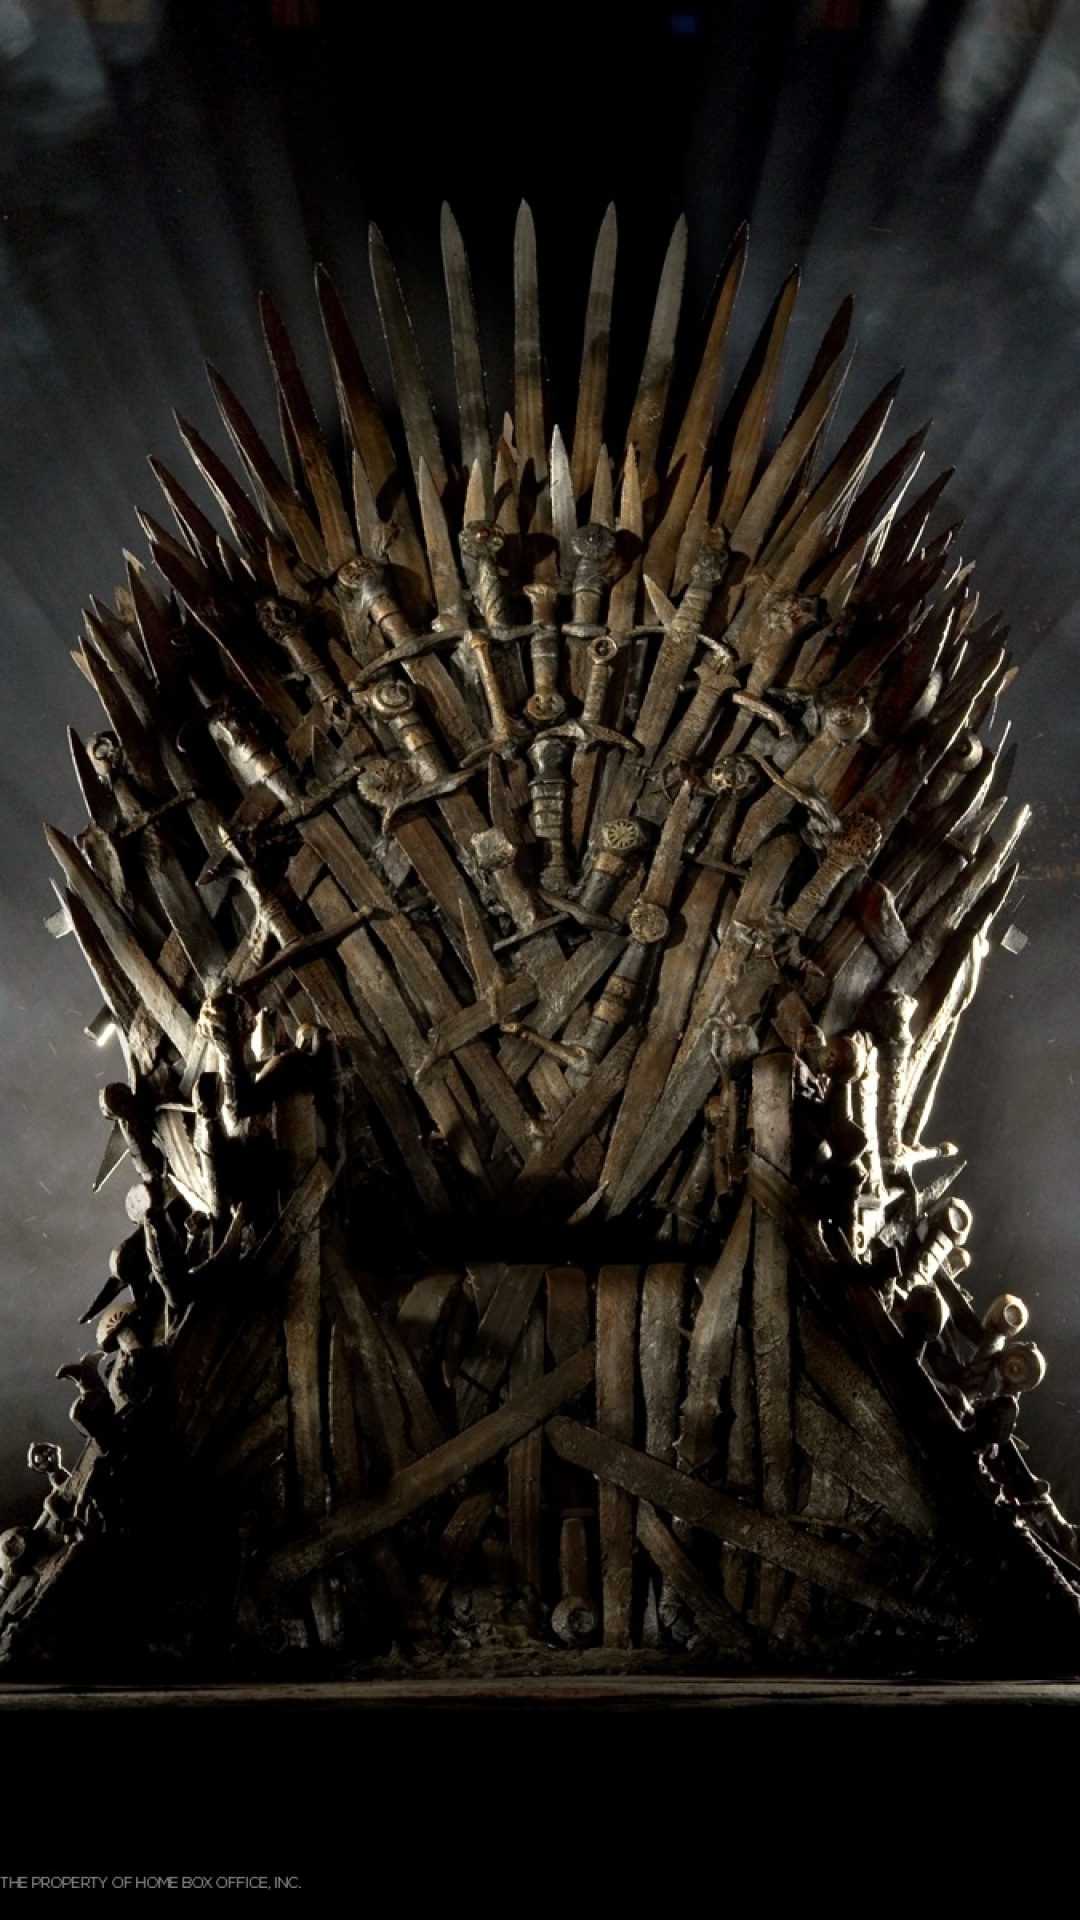 game of thrones series throne power sword 2017 1080x1920 Game of Thrones